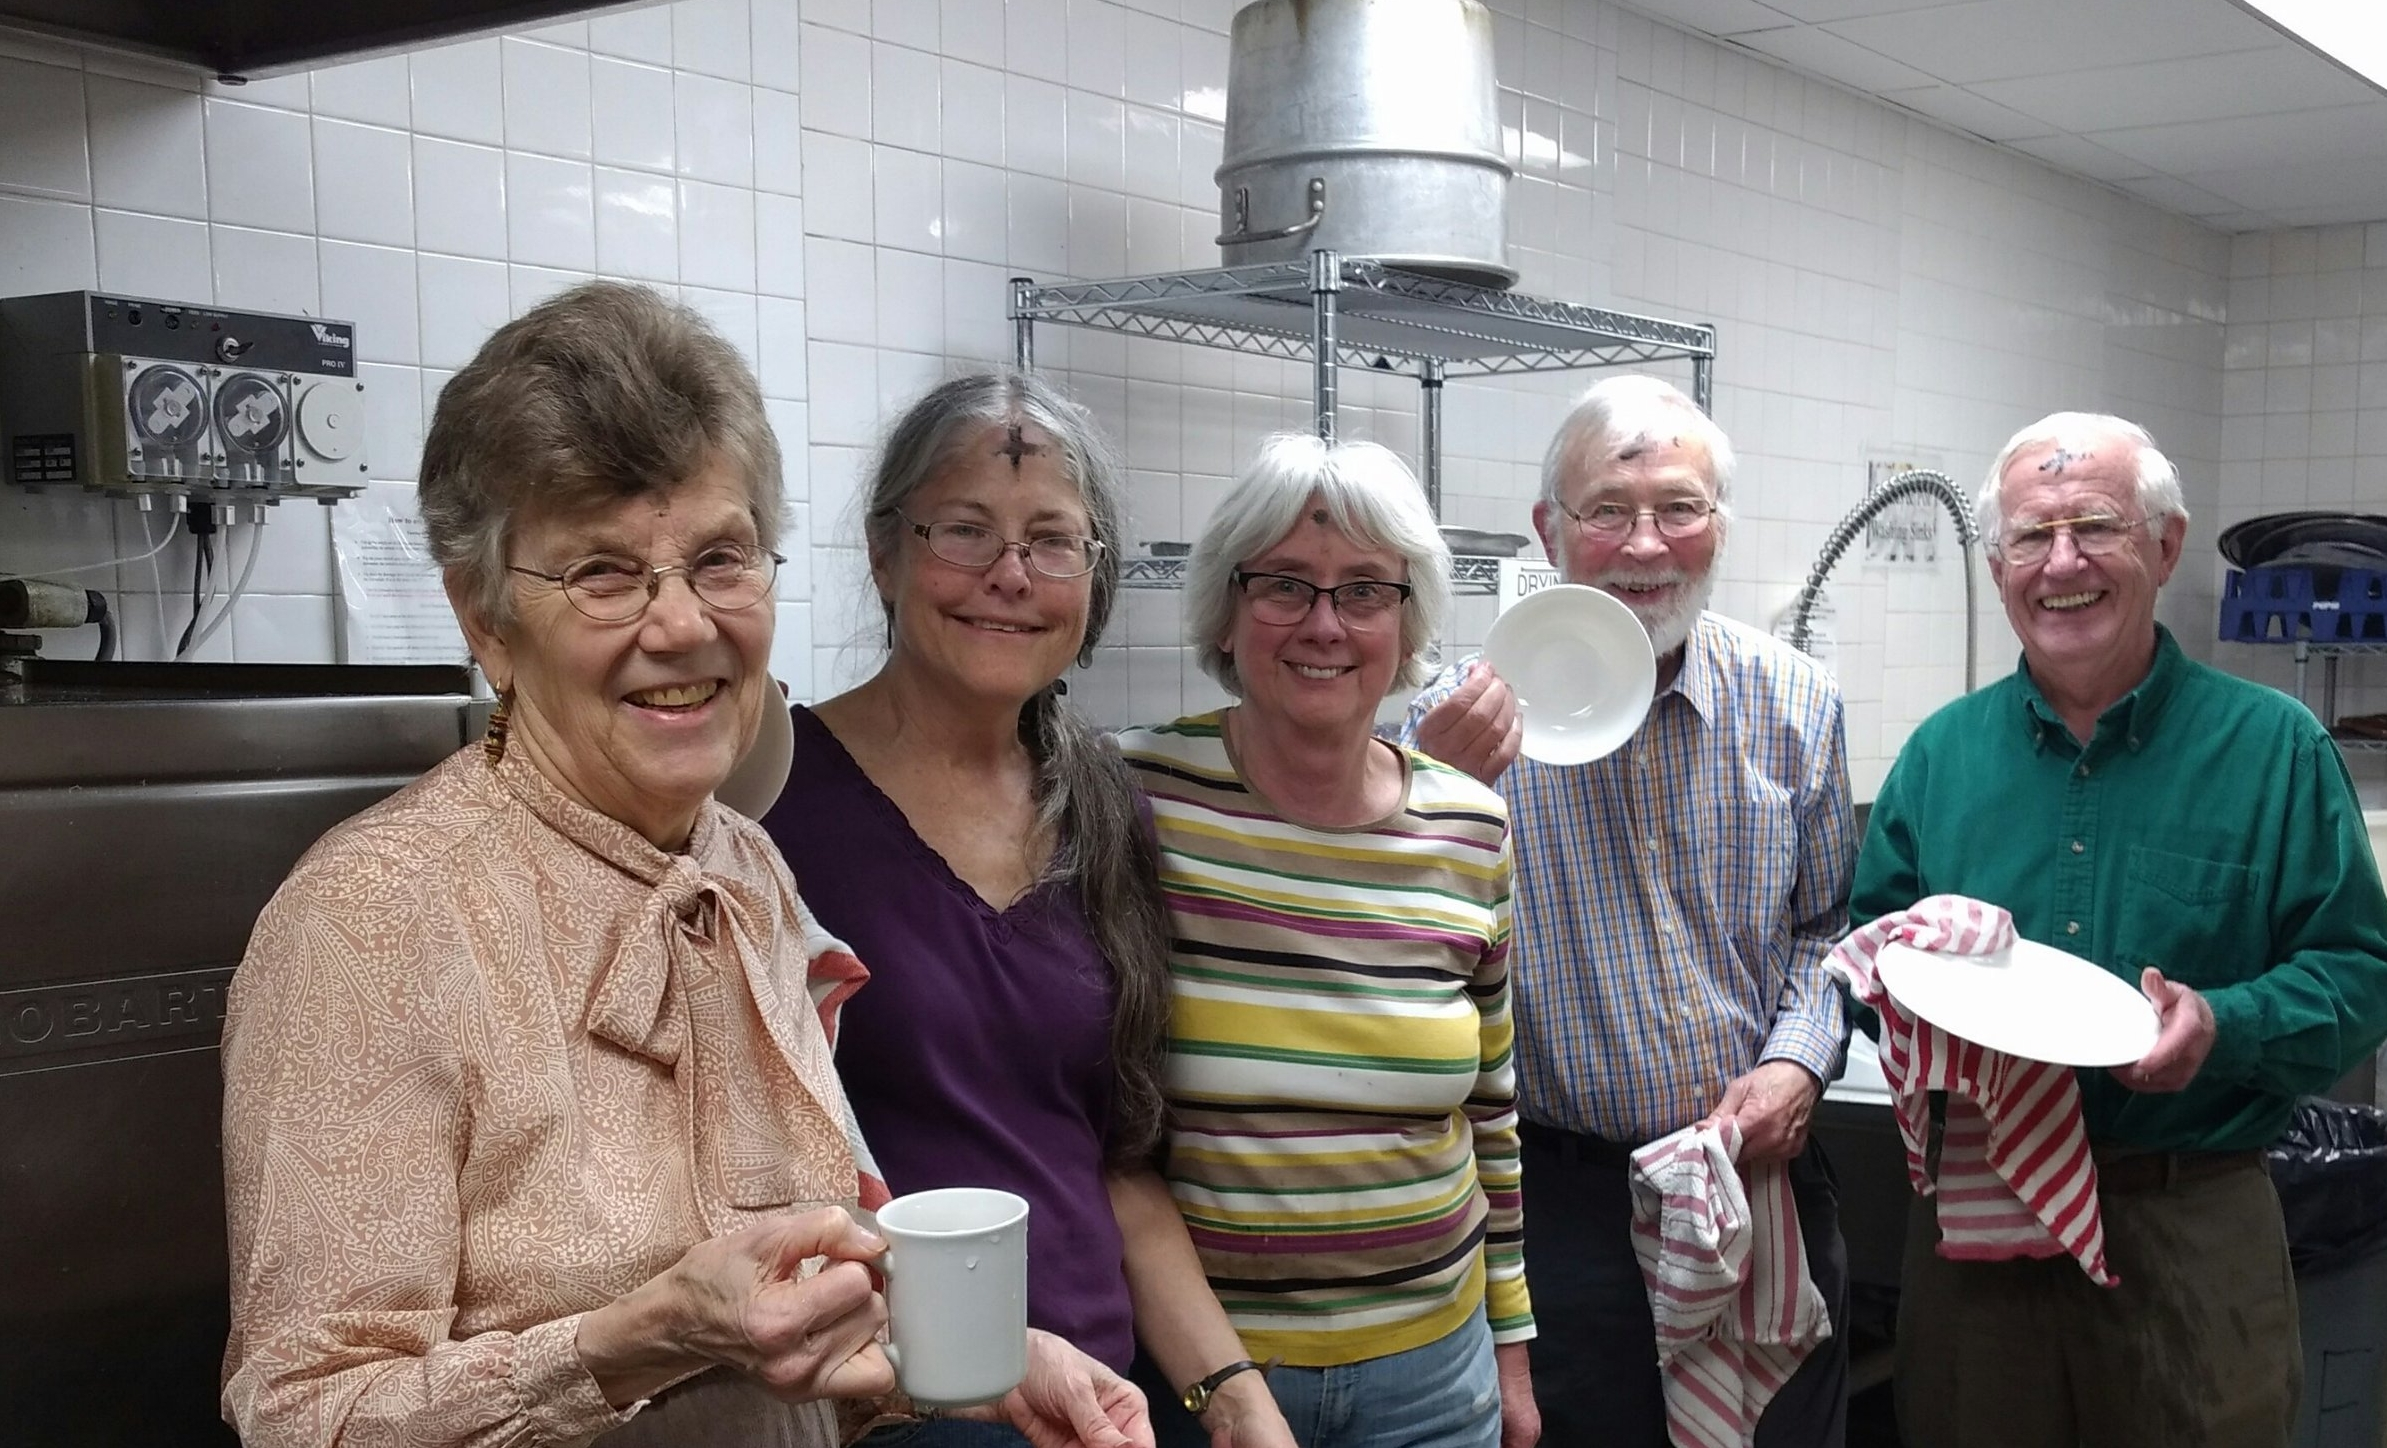 ~Thank you Esther, Ann, Cindy, Len & Dick for dishwashing on Ash Wednesday~